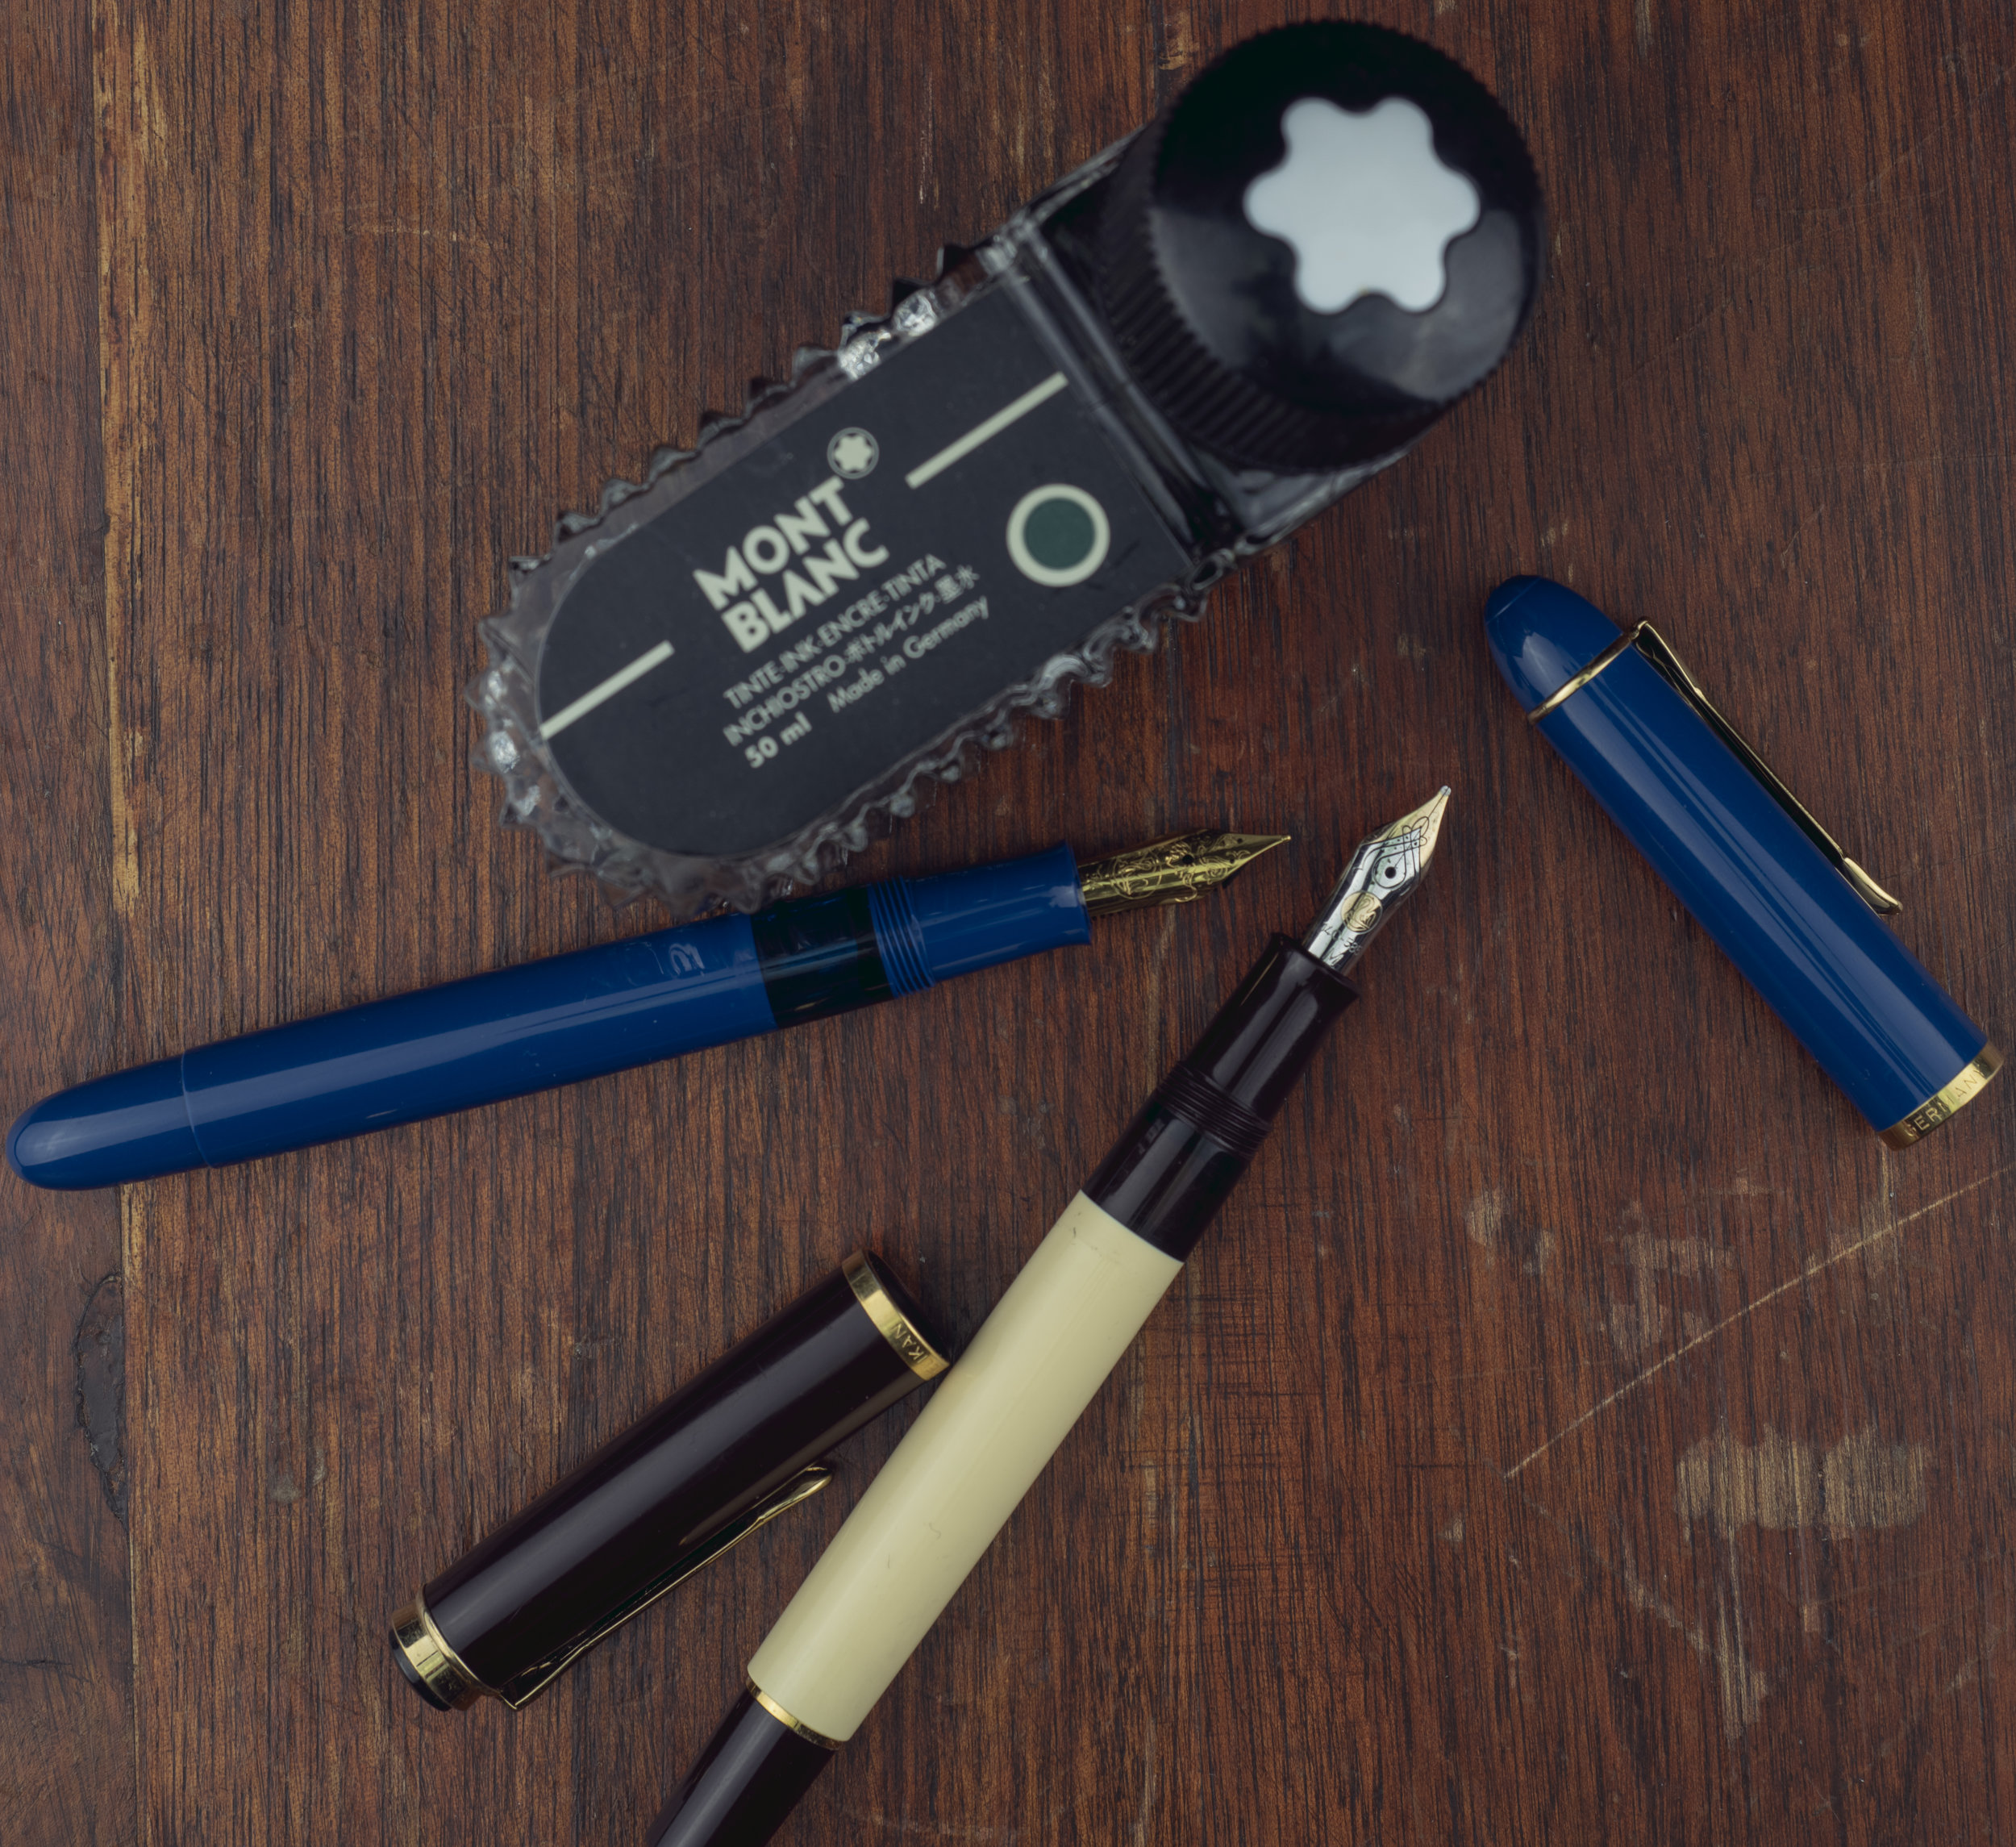 Pelikan M120 Iconic Blue with steel medium & Pelikan M200 Café Crème with M400 gold medium